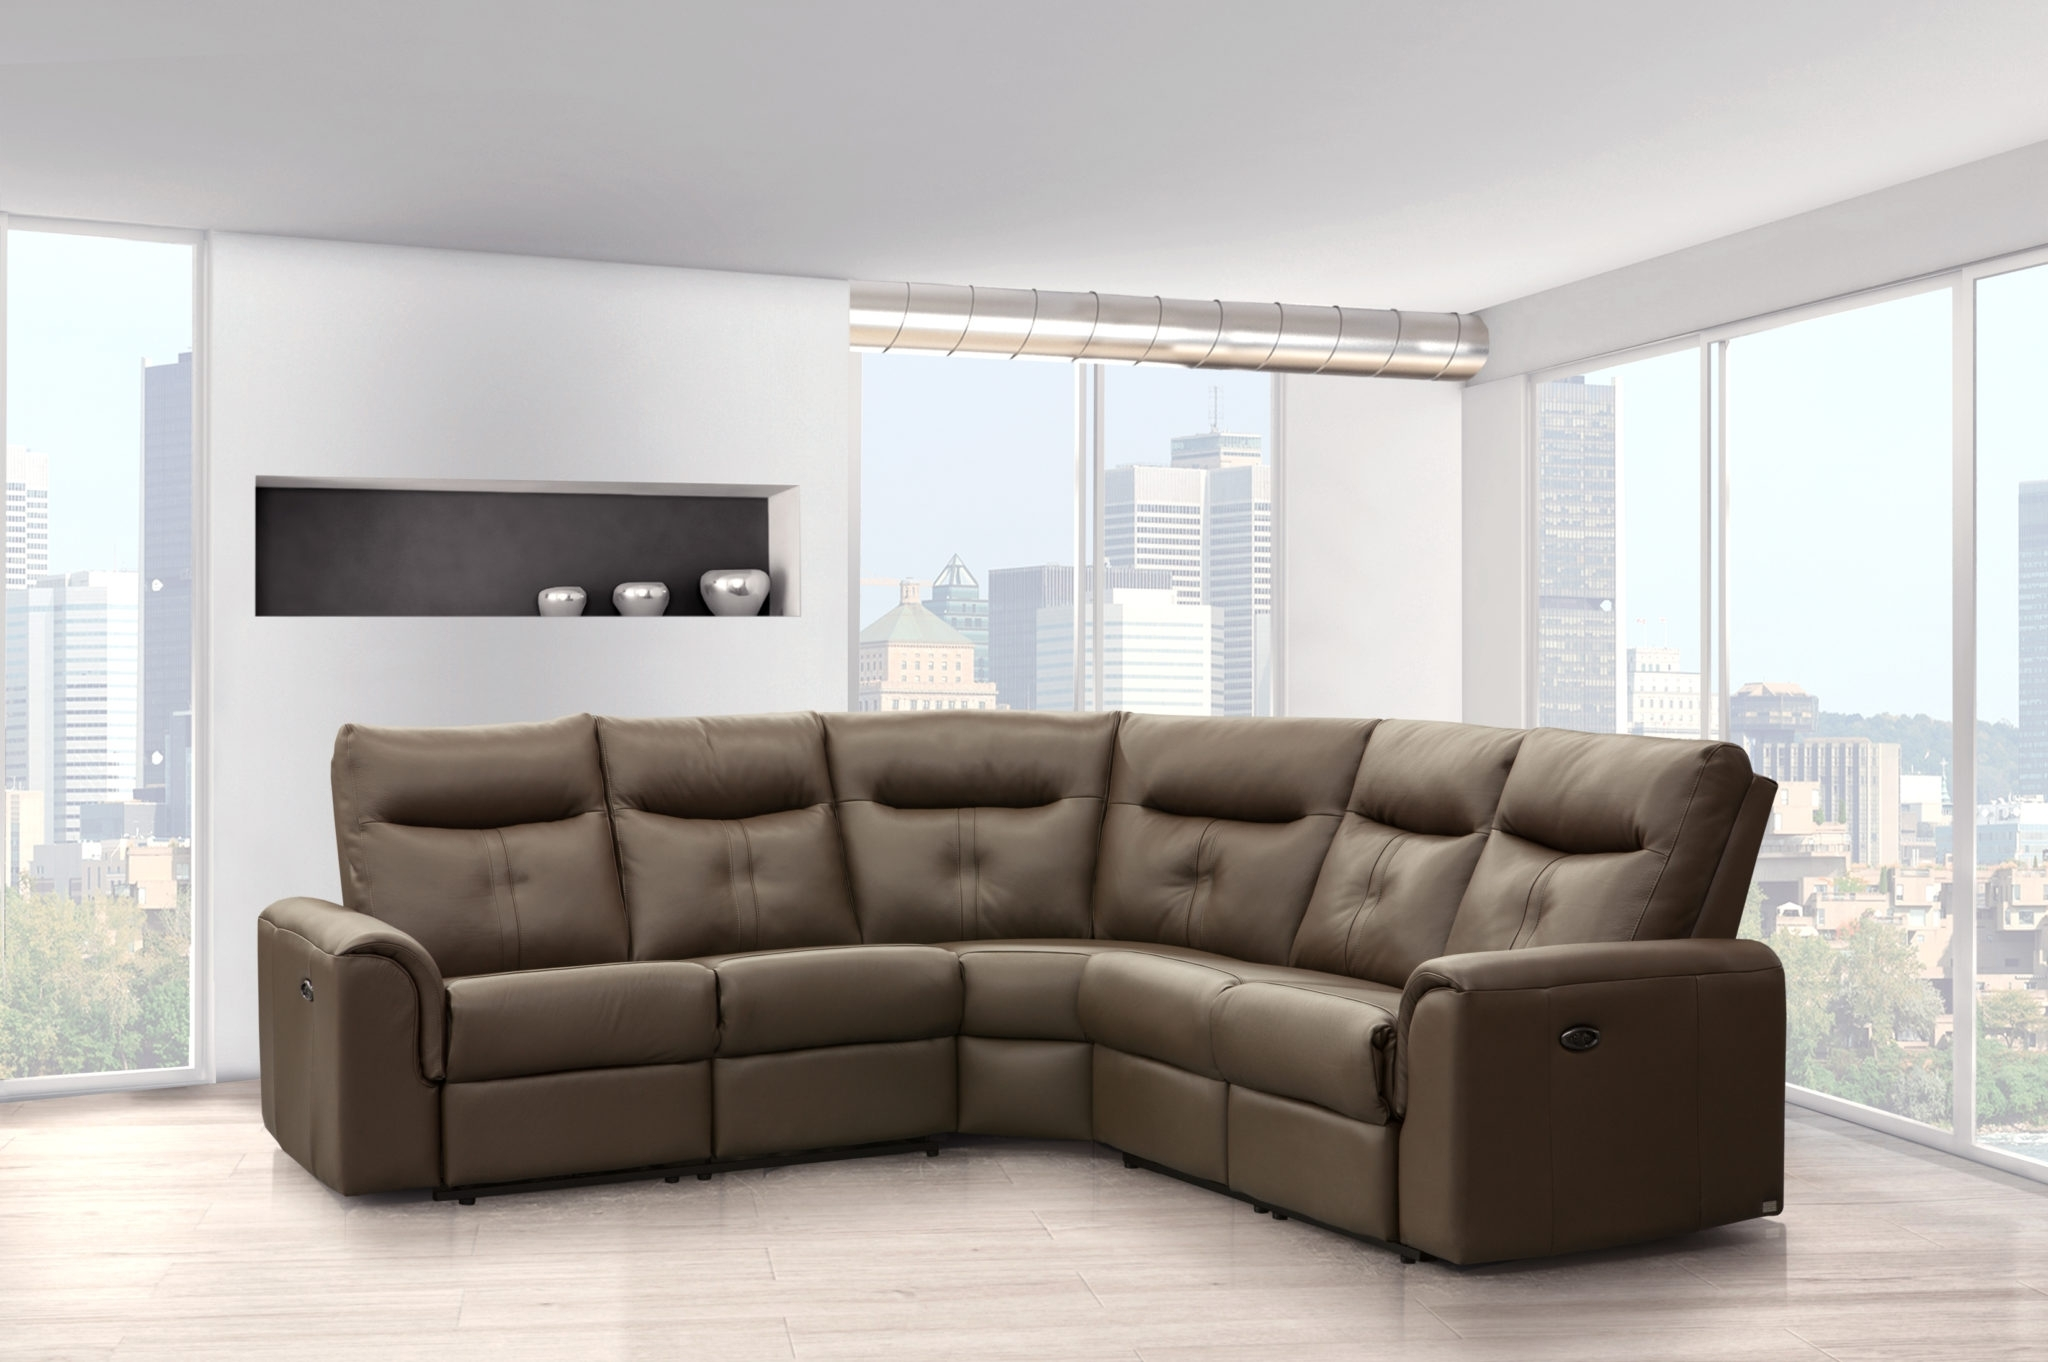 Newfoundland Sectional Sofas Intended For Preferred Elran 4016 Electric Reclining Leather Sectional (View 12 of 15)